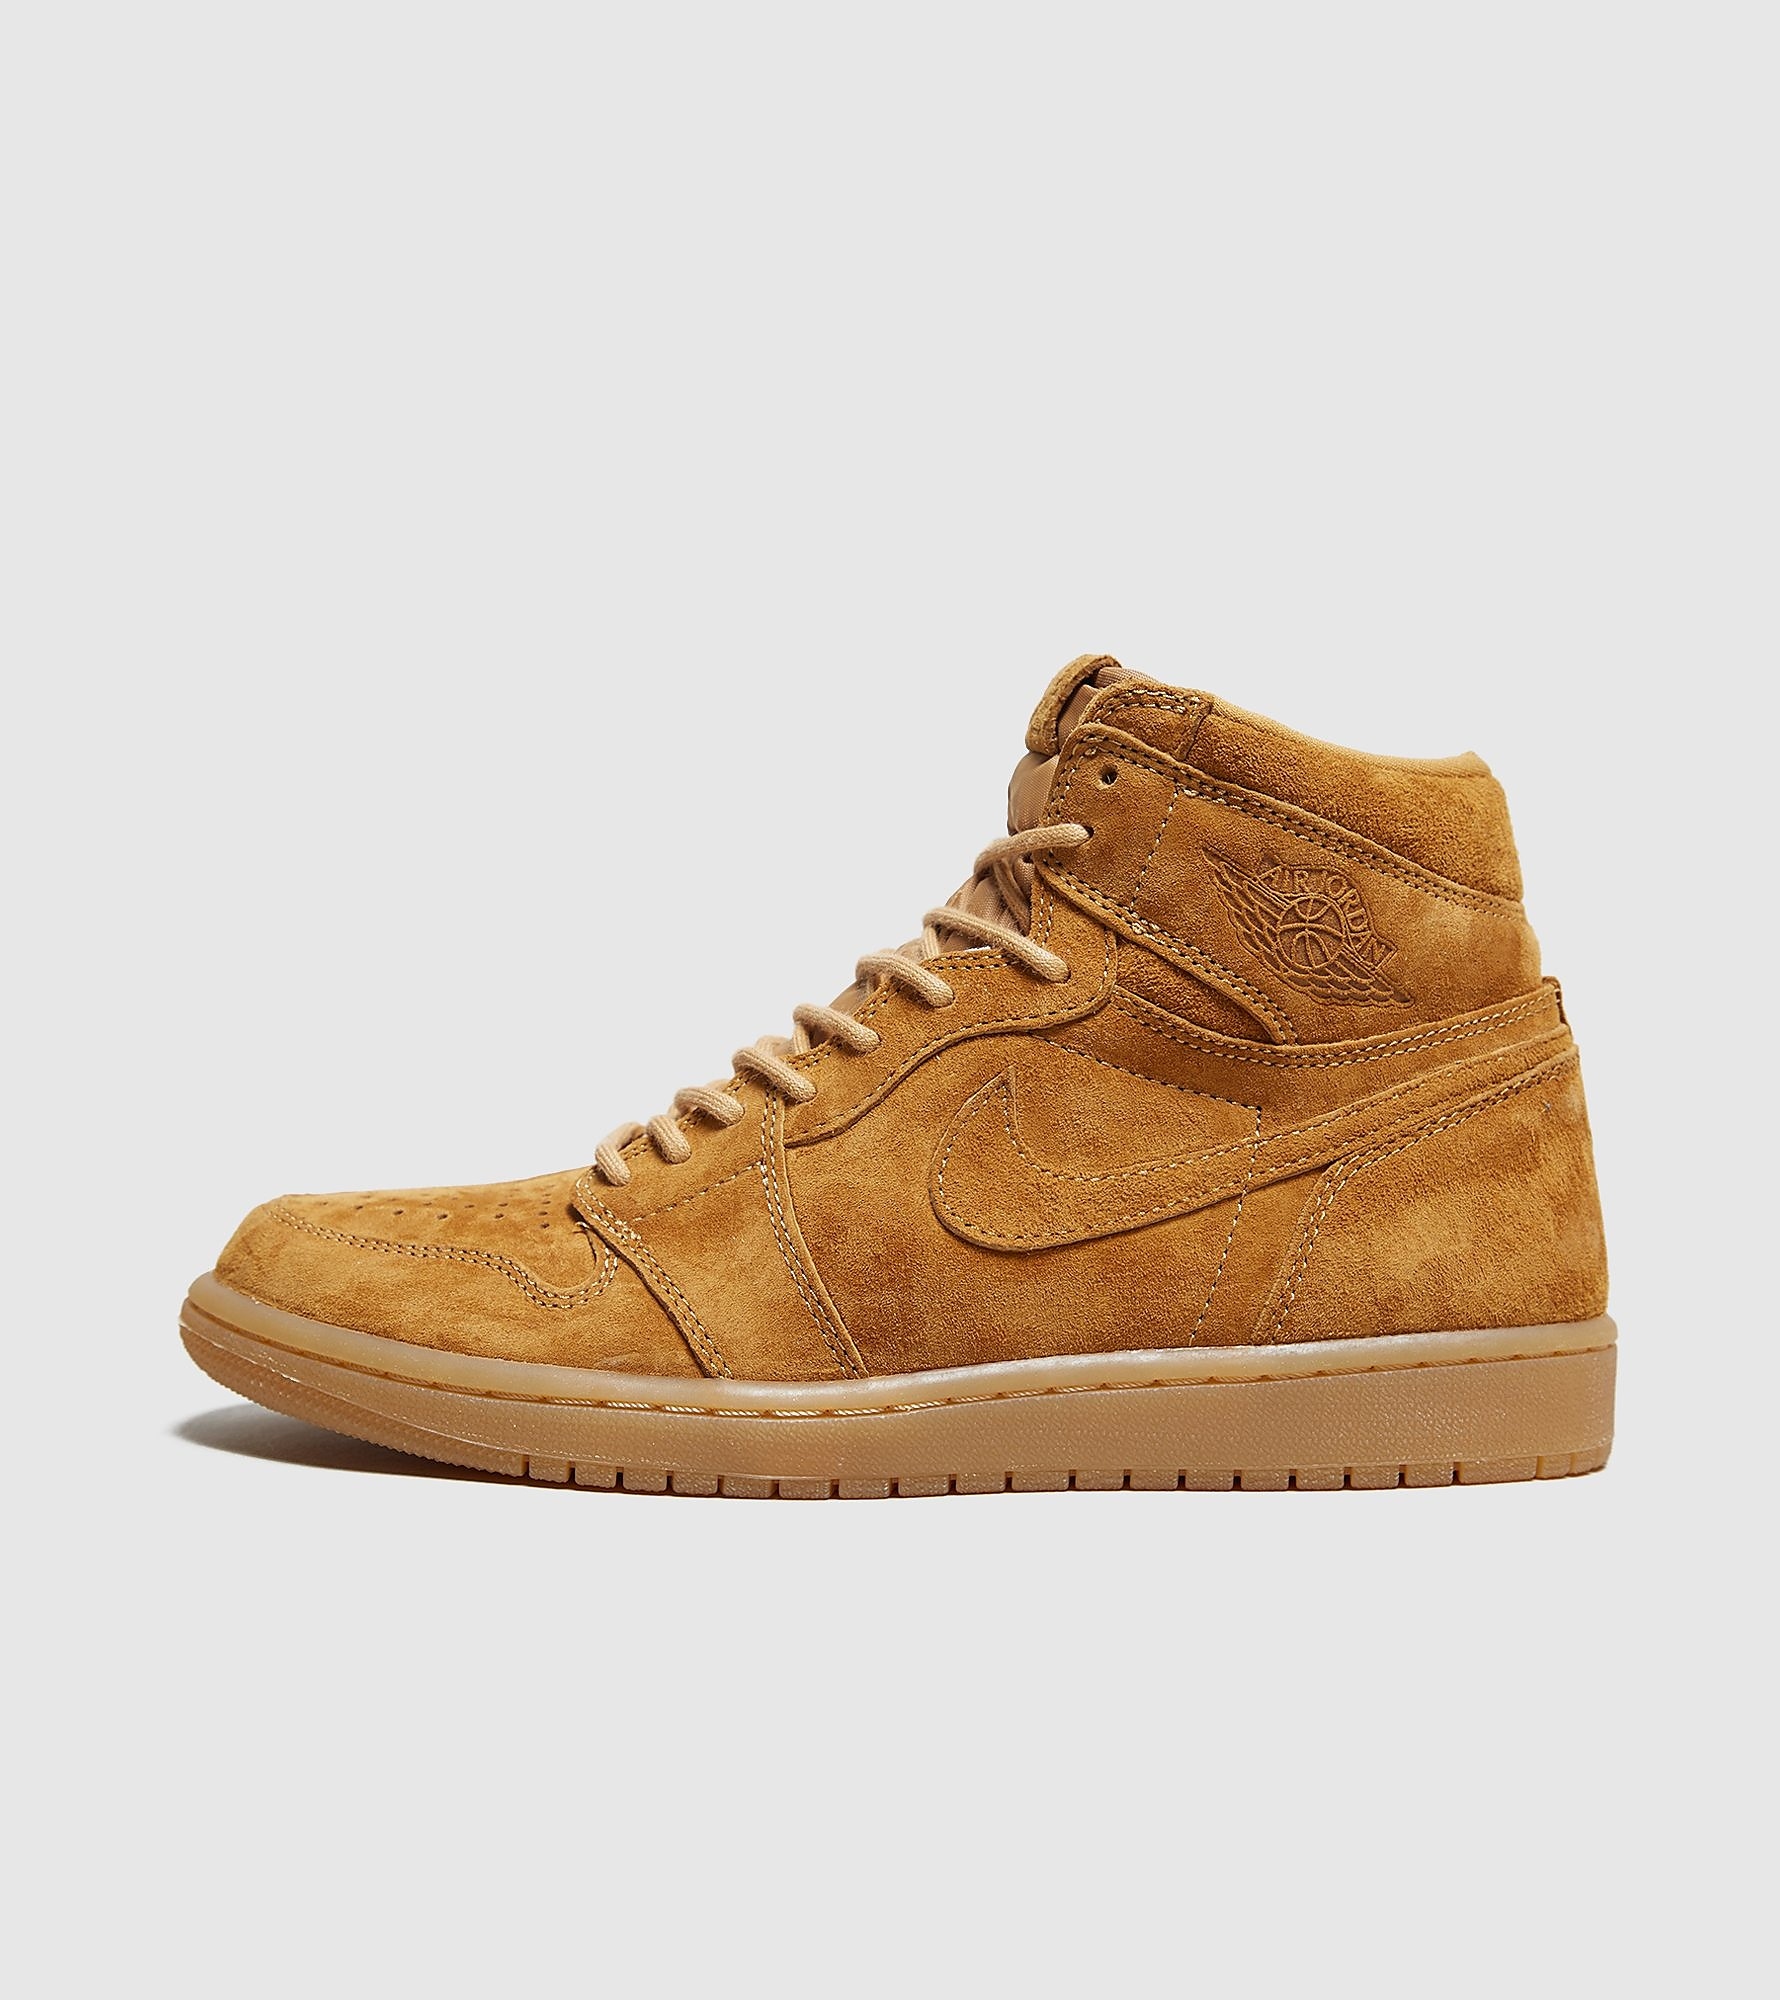 Jordan 1 High OG 'Wheat'